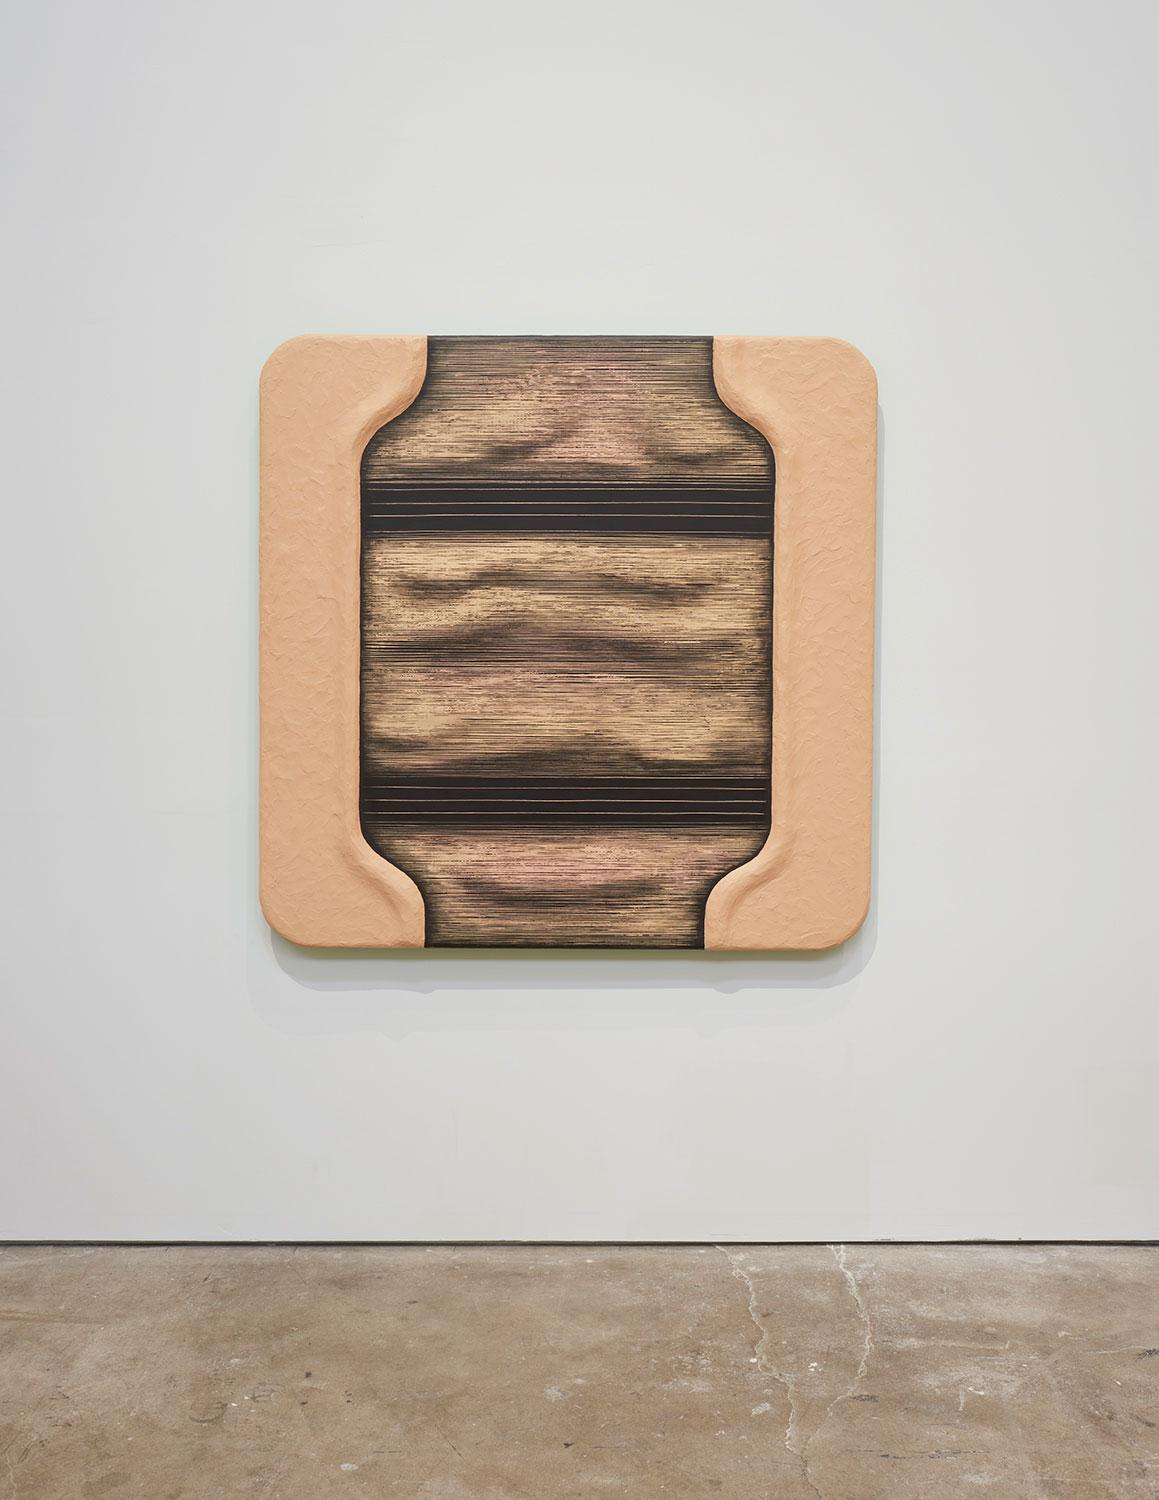 Tishan Hsu, R.E.M., 1986, installation view, Tishan Hsu: Liquid Circuit, SculptureCenter, New York, 2020. Acrylic, alkyd, vinyl cement compound on wood. 60 x 60 x 4 inches (152 x 152 x 10 cm). Collection of Marian and James H. Cohen. Photo: Kyle Knodell